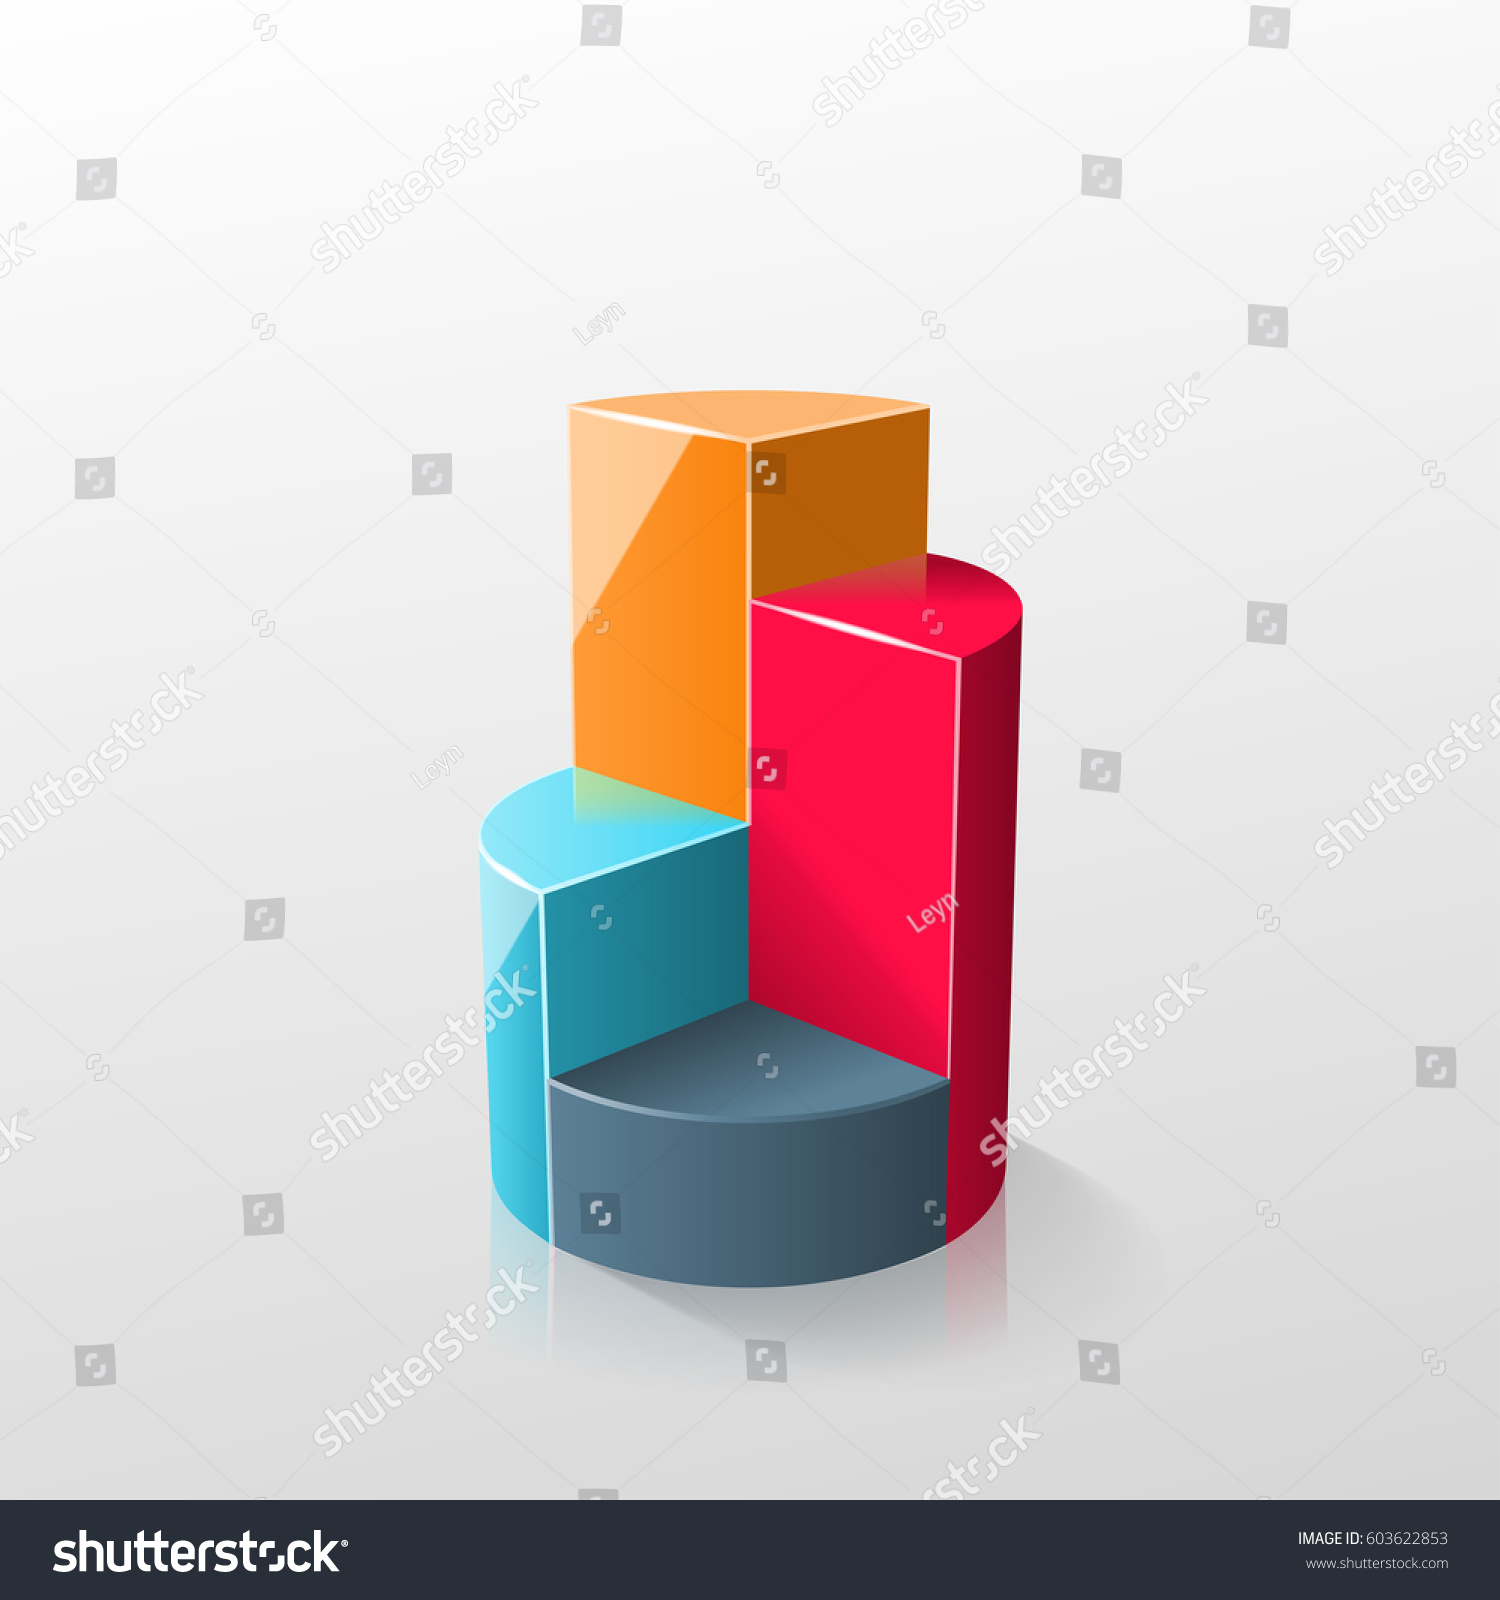 Creative Colorful 3 D Pie Chart Can Stock Illustration 603622853 ...